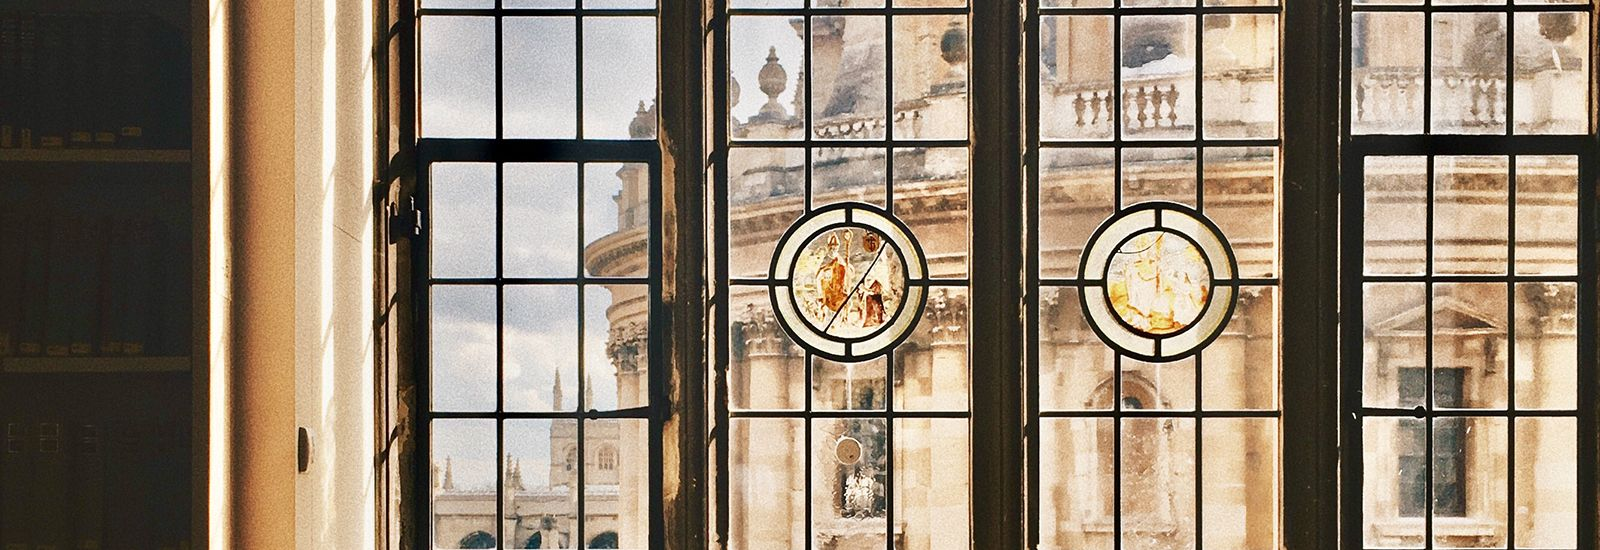 View of the Radcliffe Camera through a window